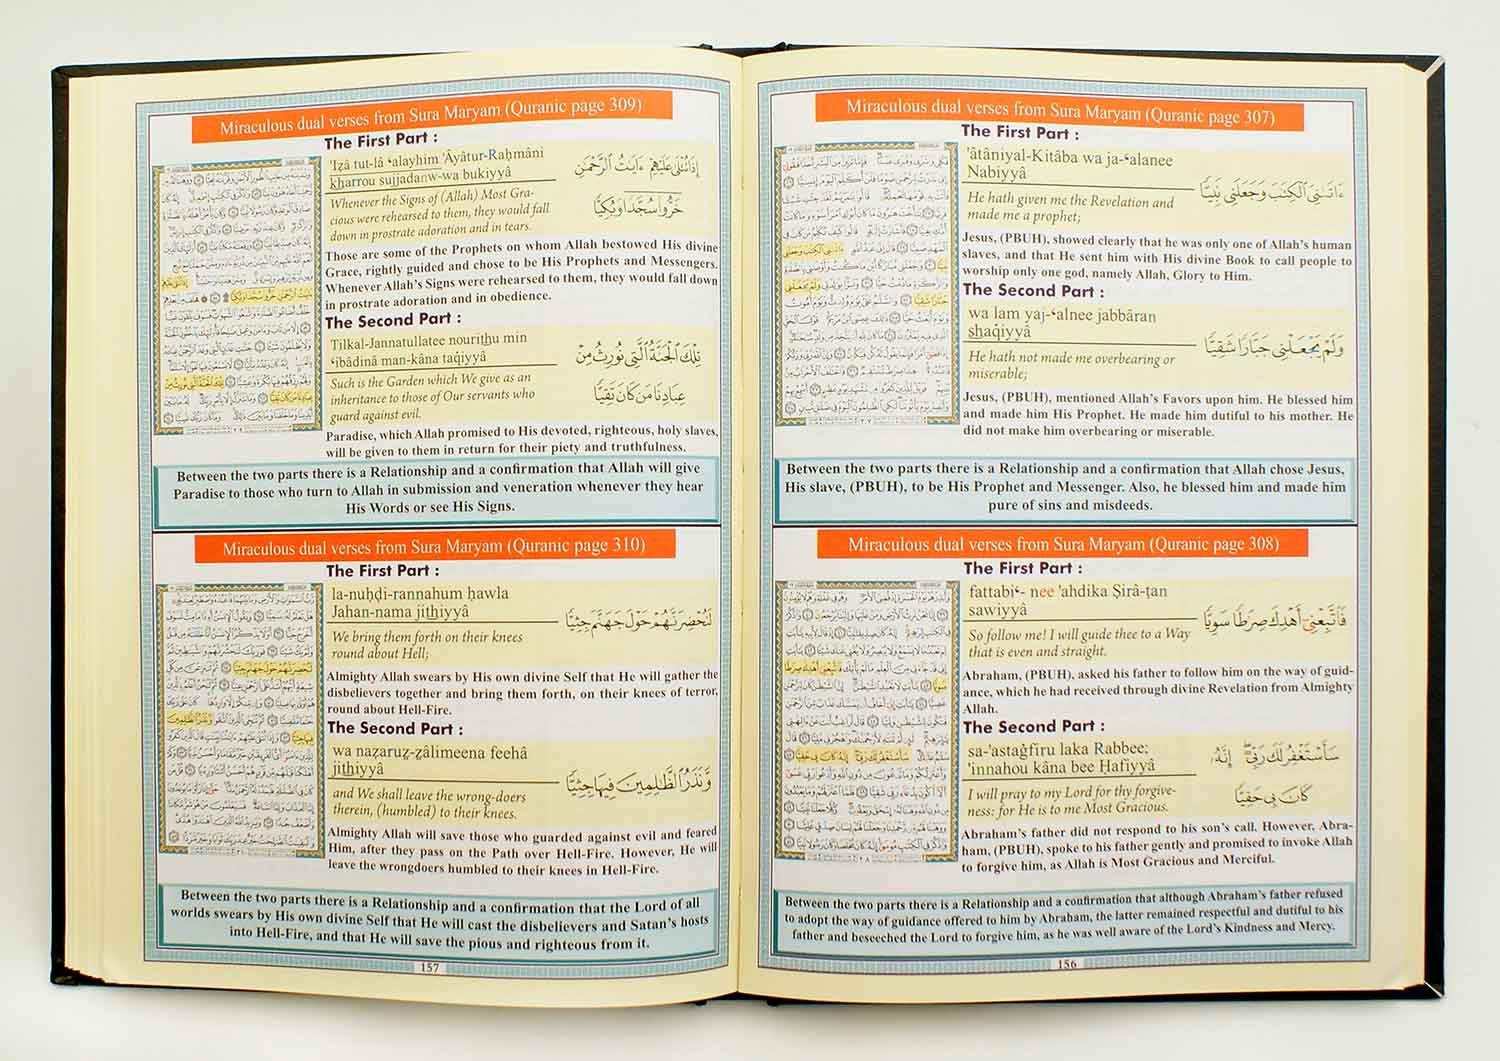 Miraculus Dual Verses in the Quranic Pages in English